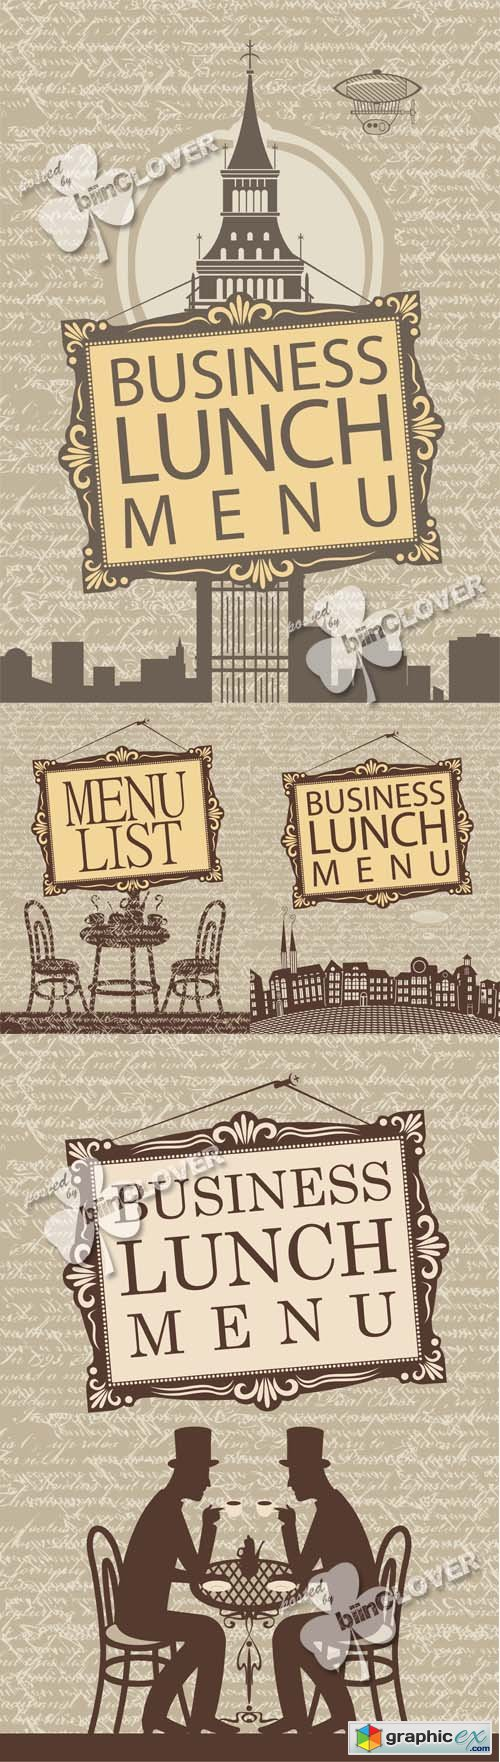 Vector Business lunch menu design 0460